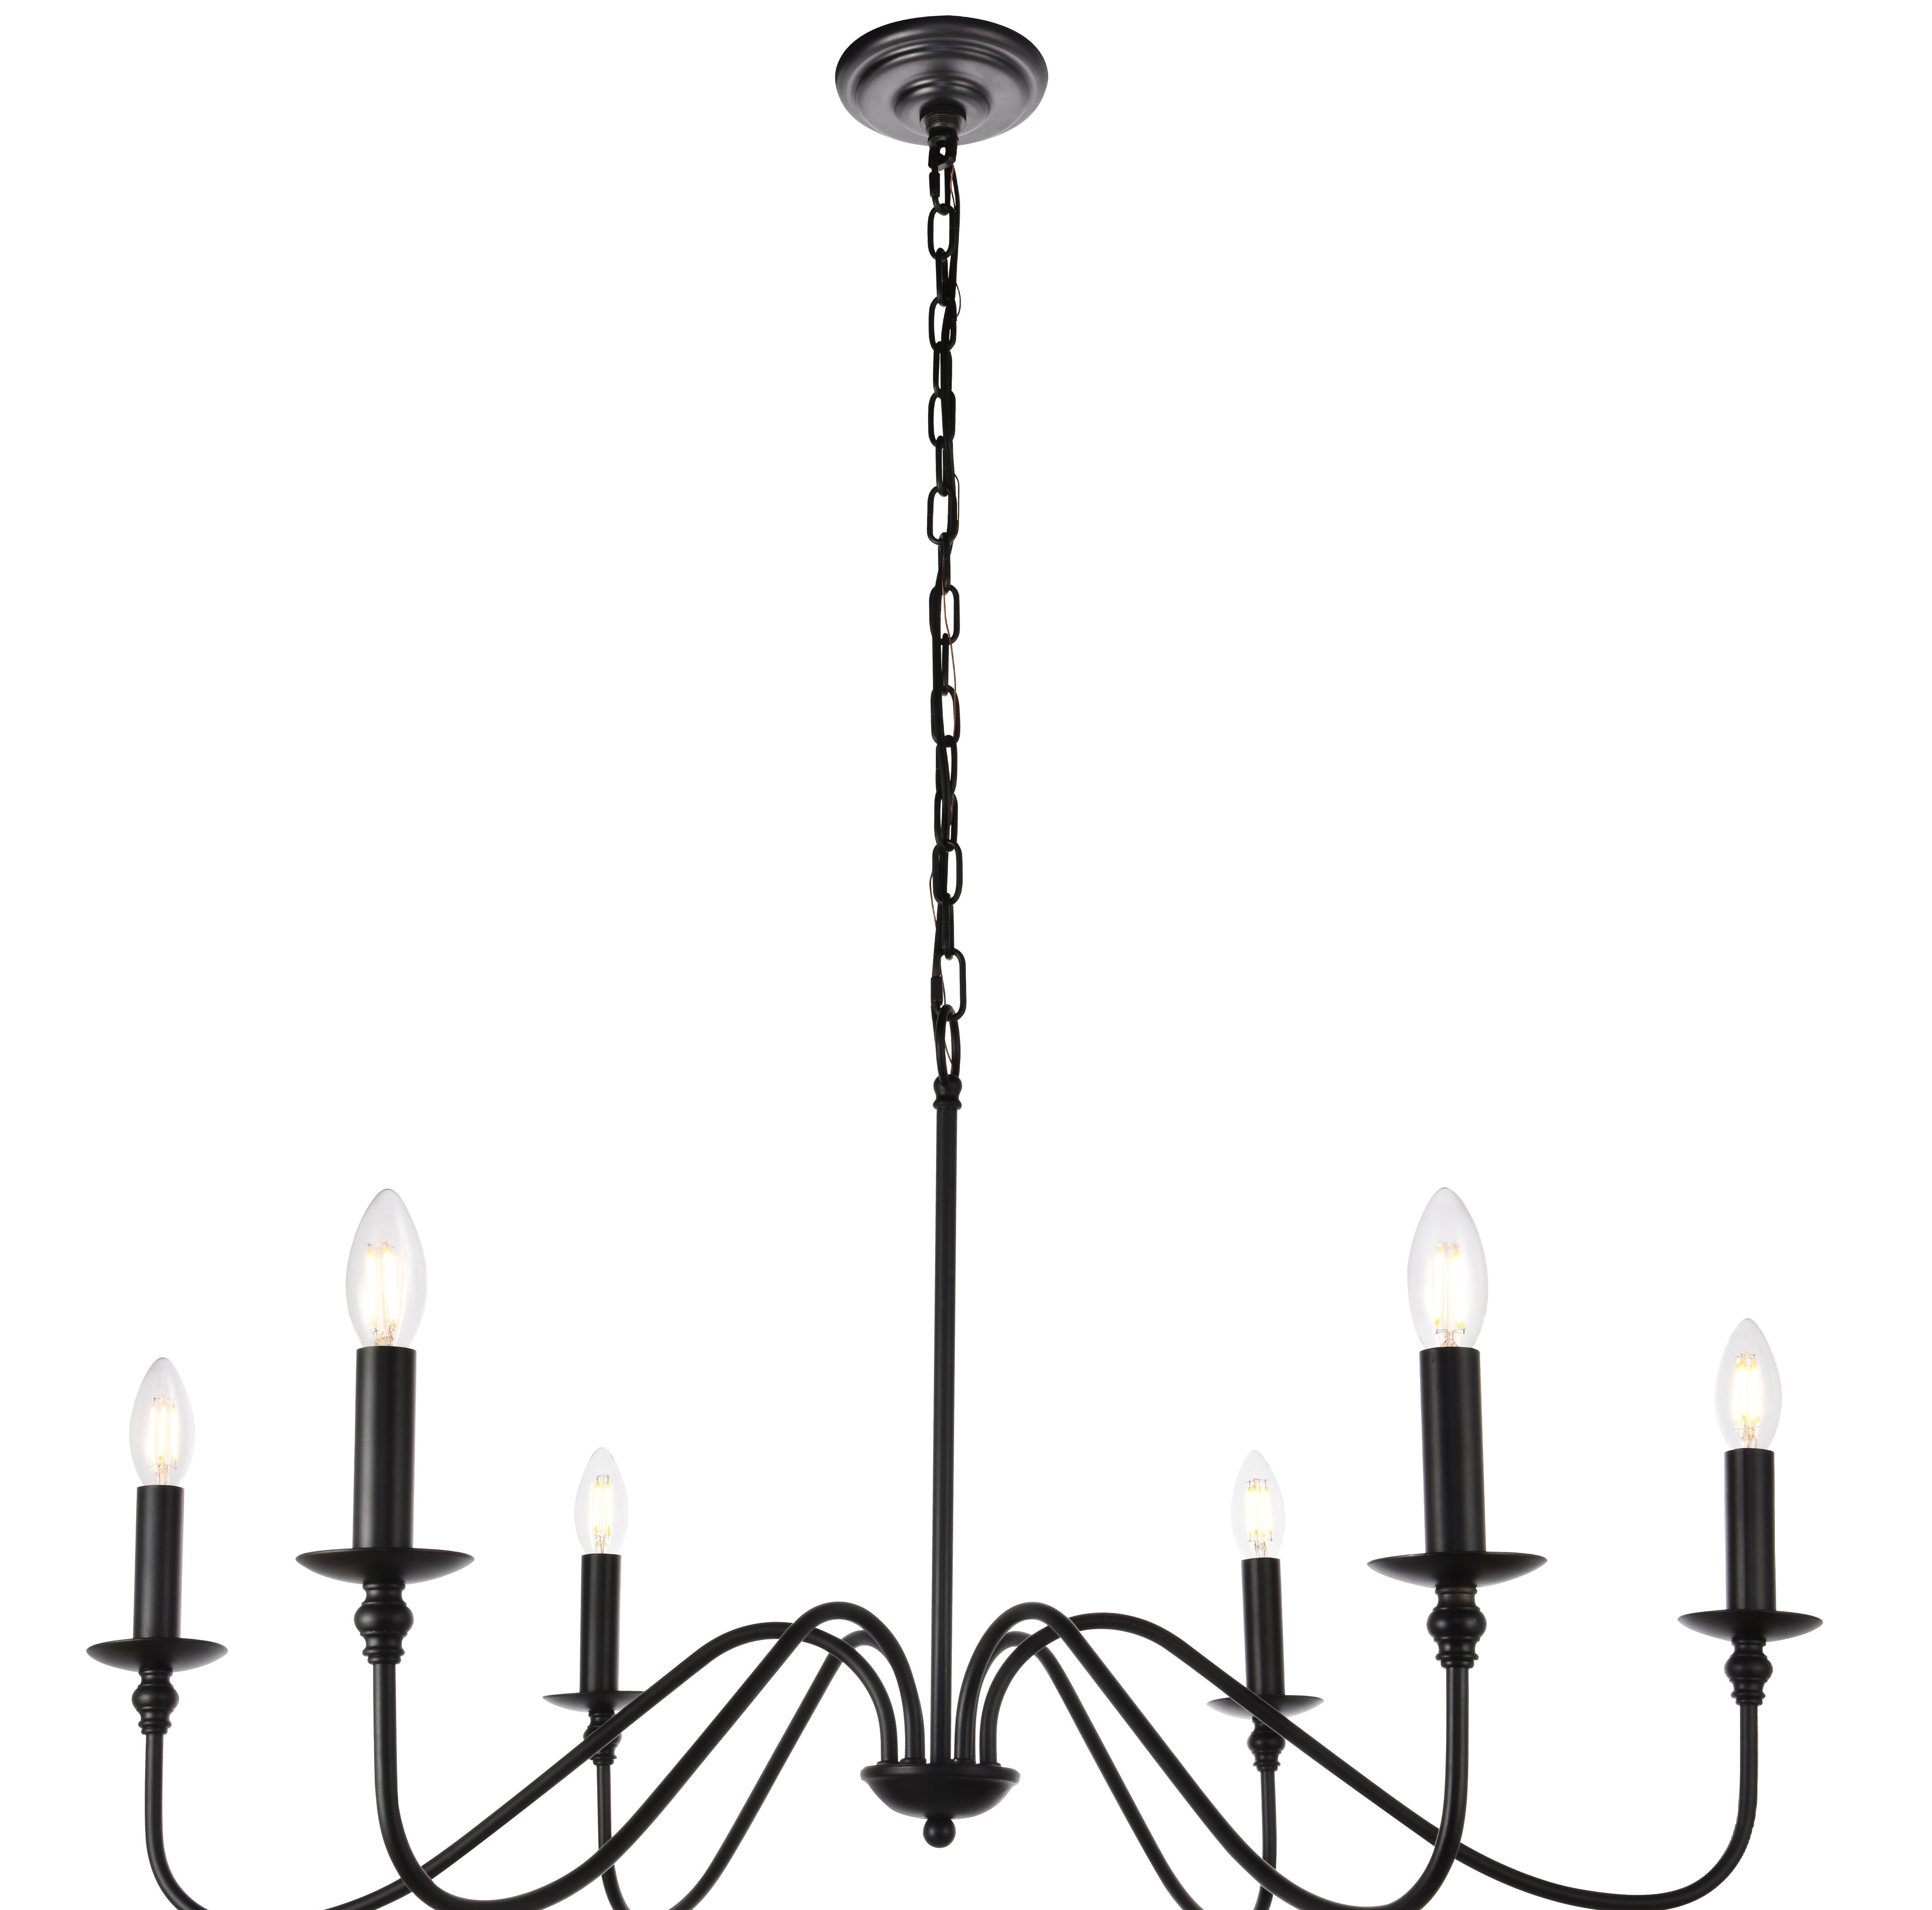 Gregoire 6 Light Globe Chandeliers For Fashionable Laurel Foundry Modern Farmhouse Hamza 6 Light Candle Style Chandelier (View 12 of 25)